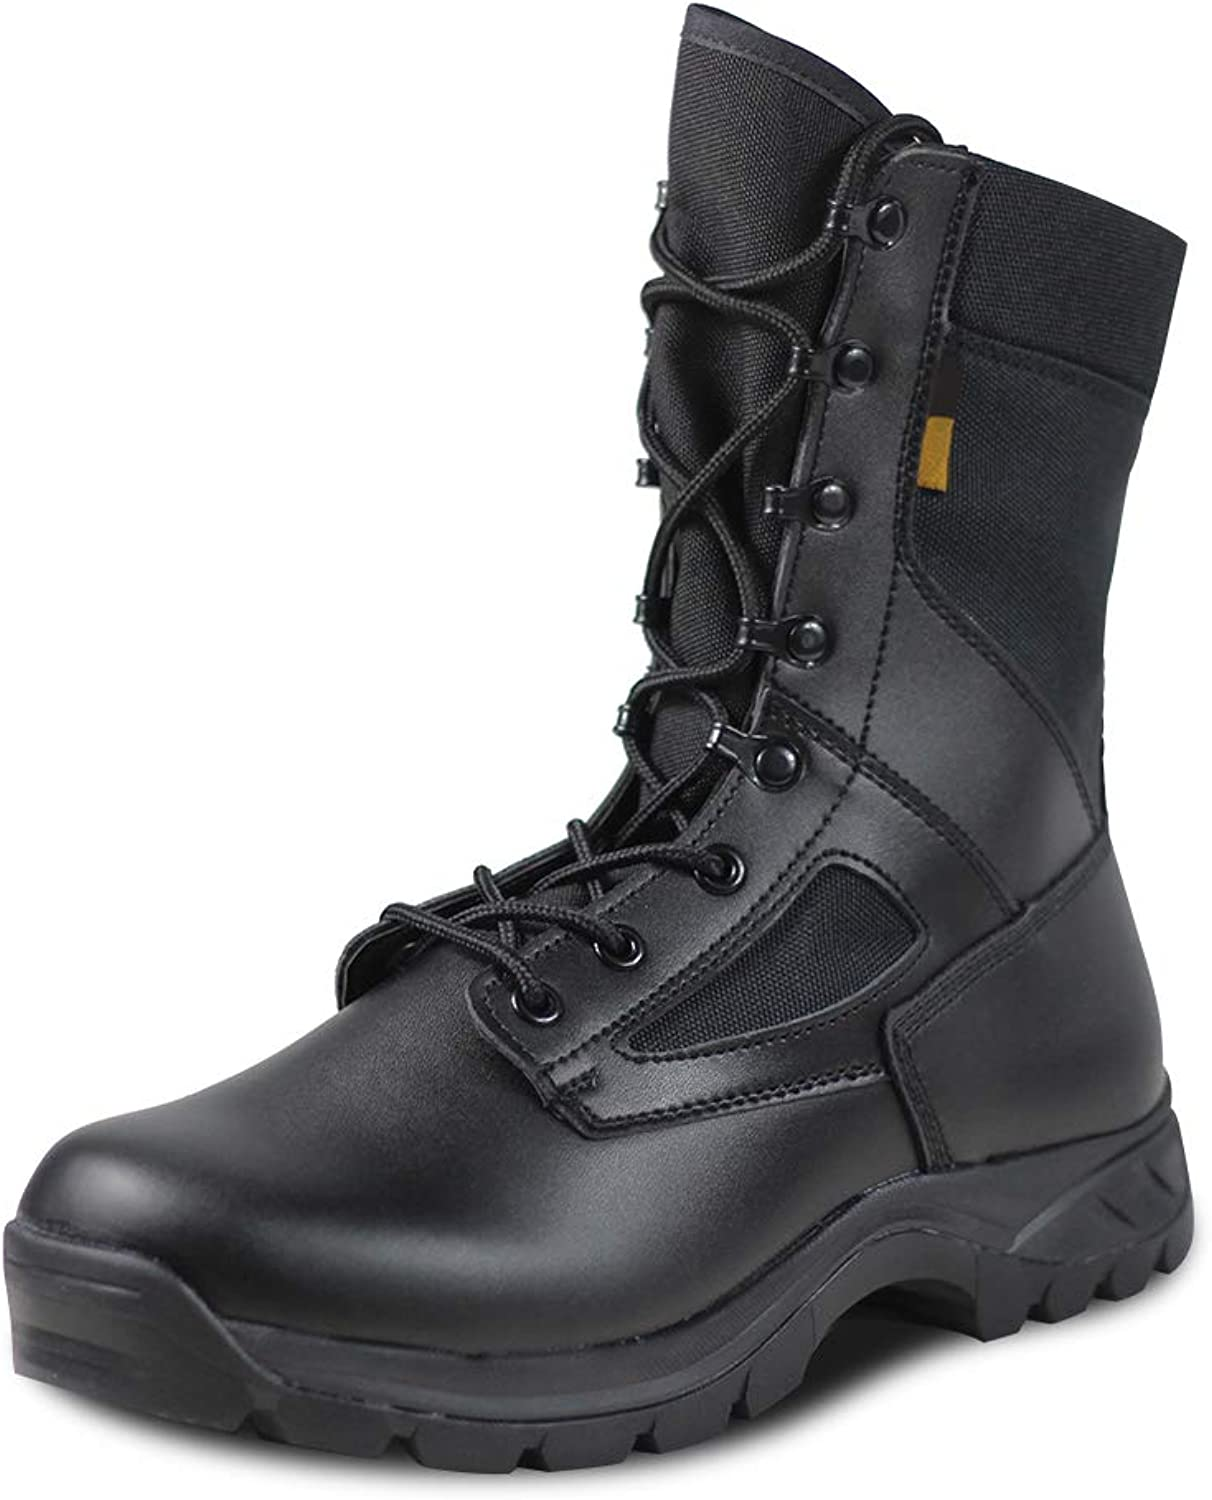 LUDEY Men's 8'' Military Boots Leather Nylon Work & Safety Boots Tactical Boots Outdoor Water Resistant Boots IDS-658